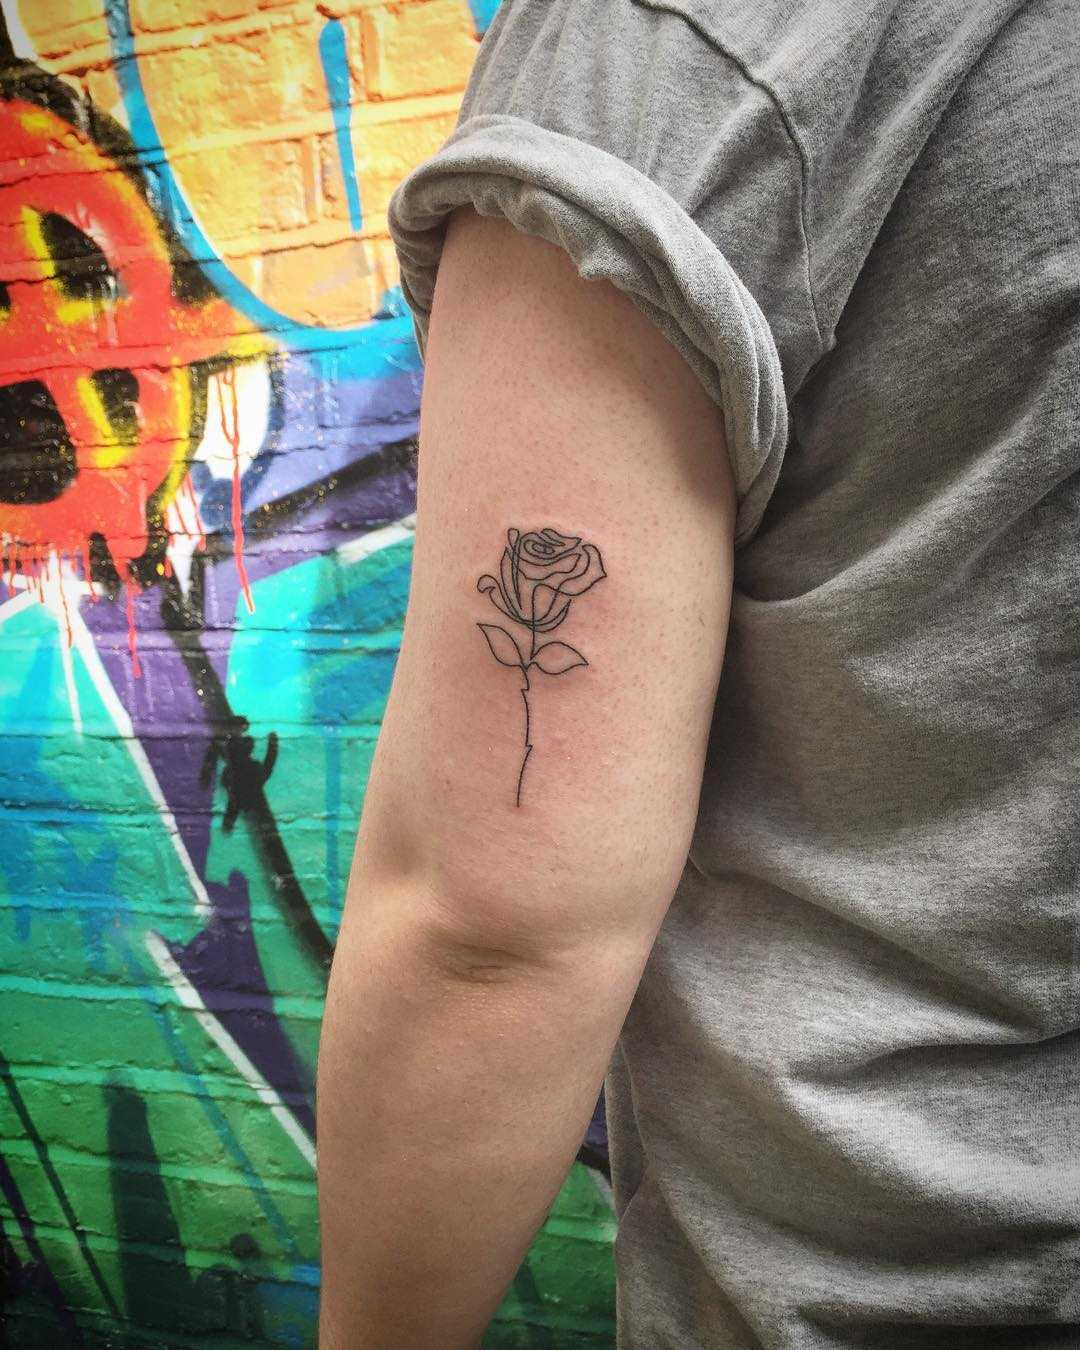 Single line rose tattoo by Kirk Budden